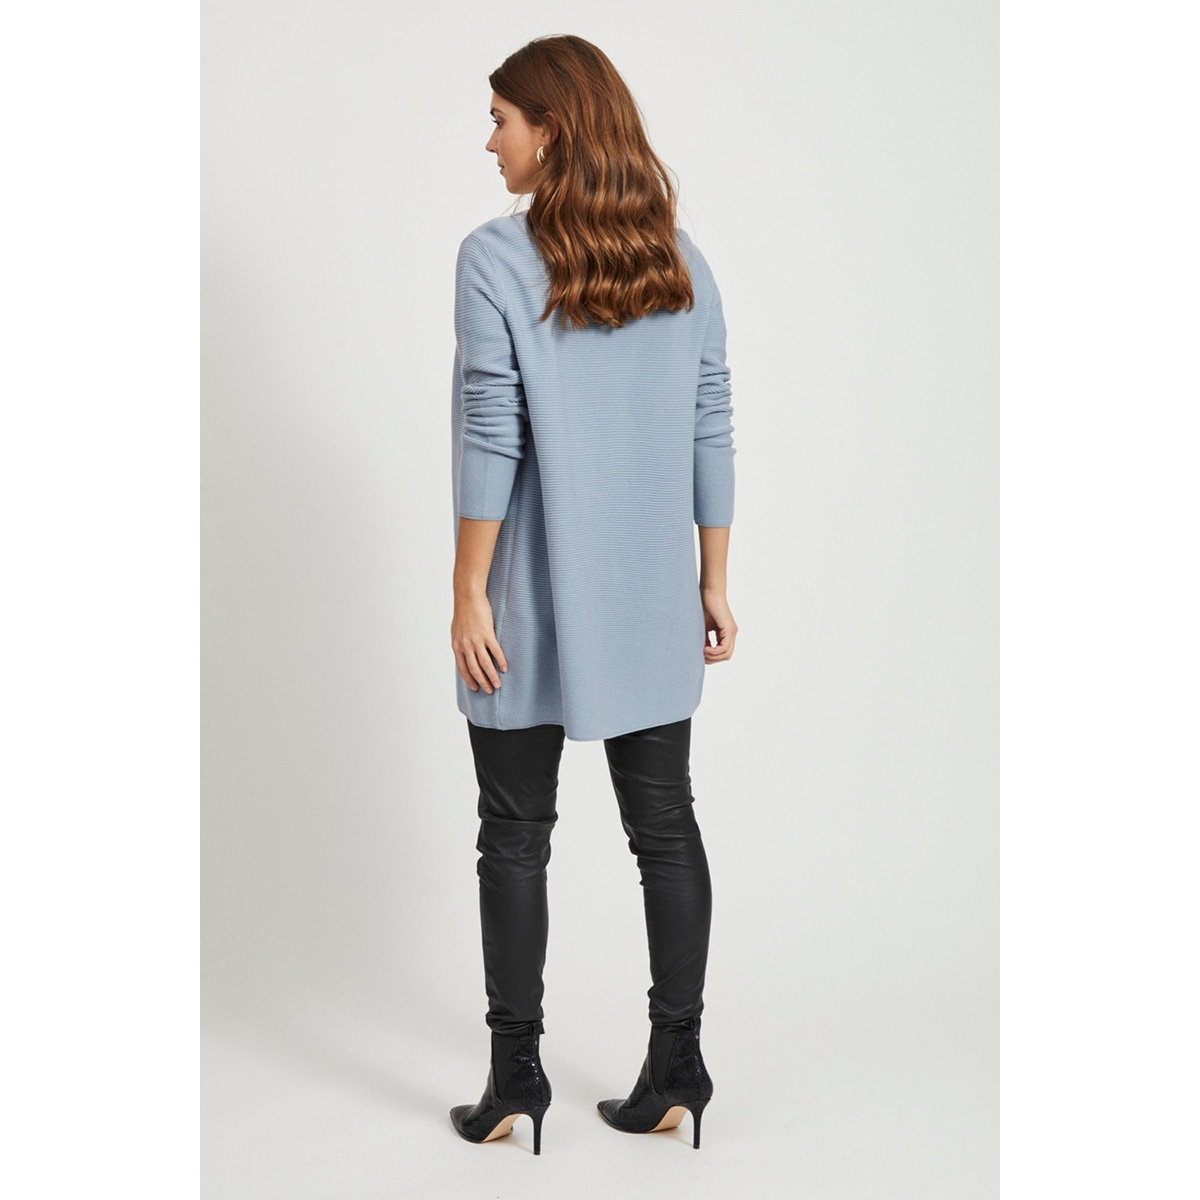 vilalaine knit l/s long cardigan - 14055174 vila vest ashley blue